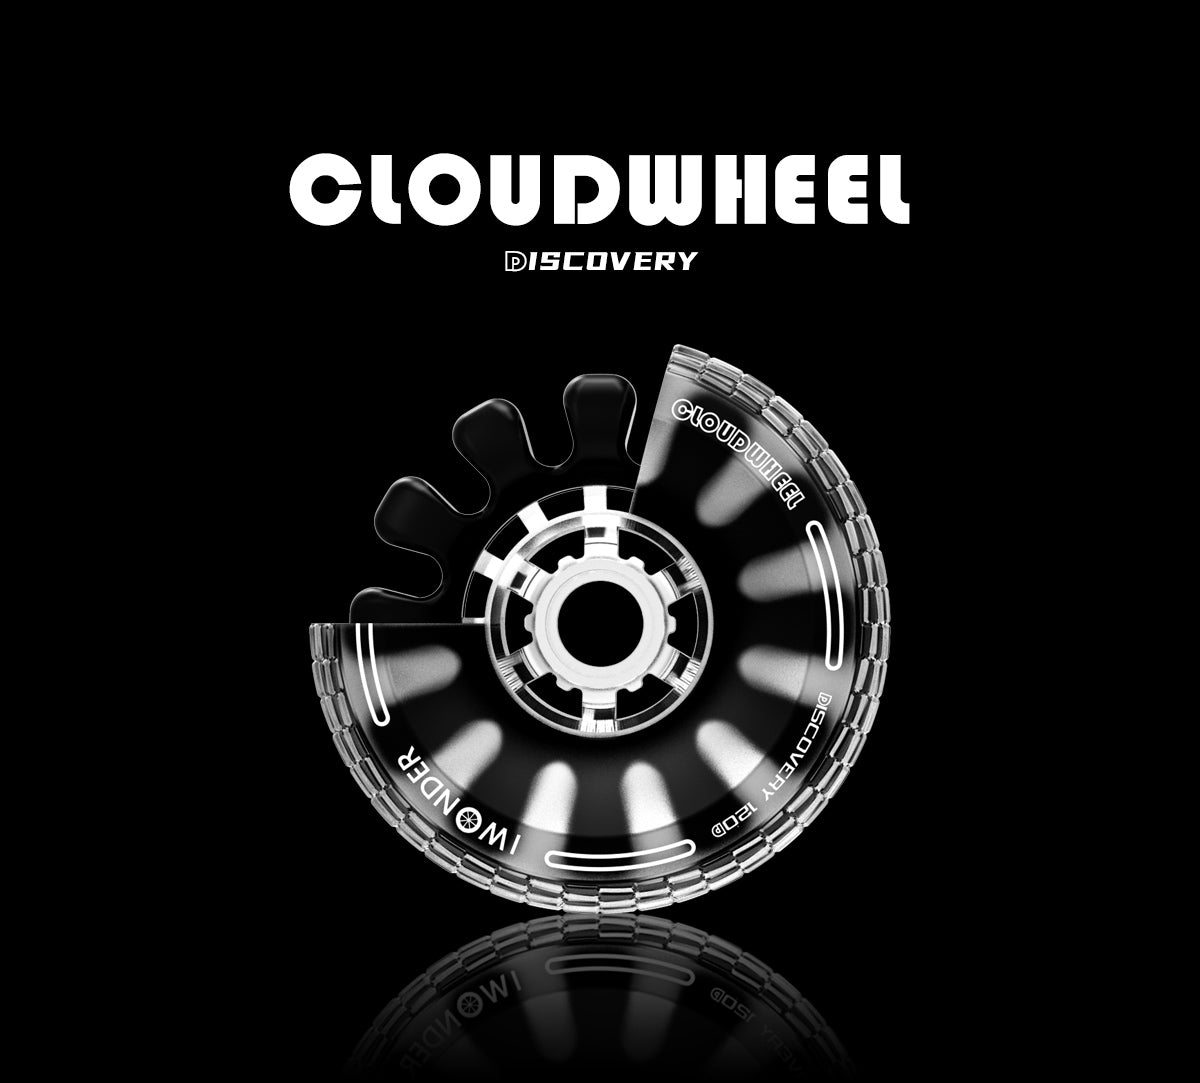 CLOUDWHEEL Discovery